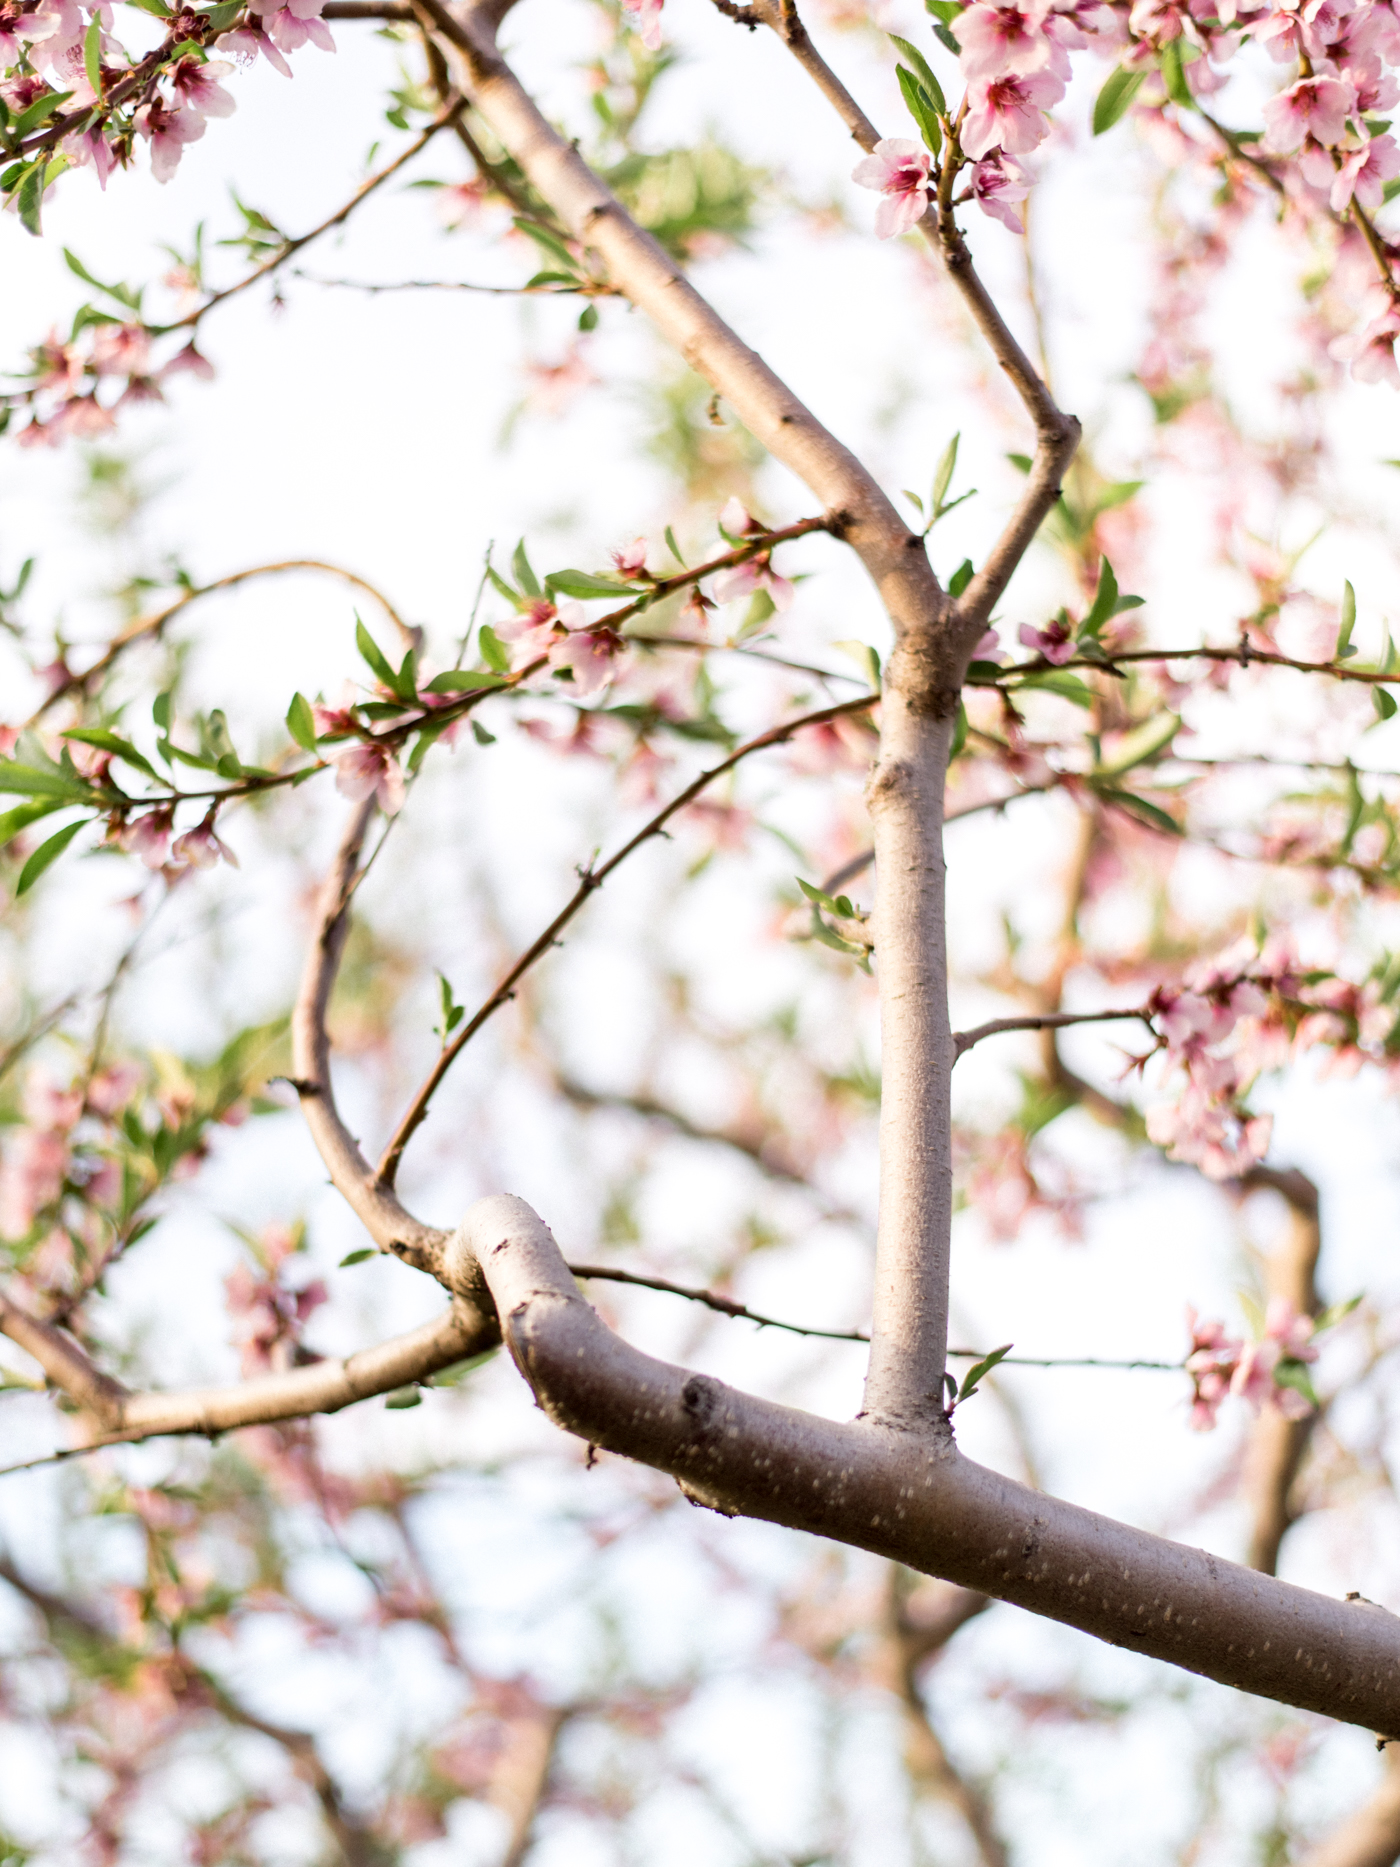 Chris & Heather's Engagement Session in Vineland Ontario Spring Blossoms Trees by Hush Hush Photography & Film Aidan Hennebry - 13.jpg